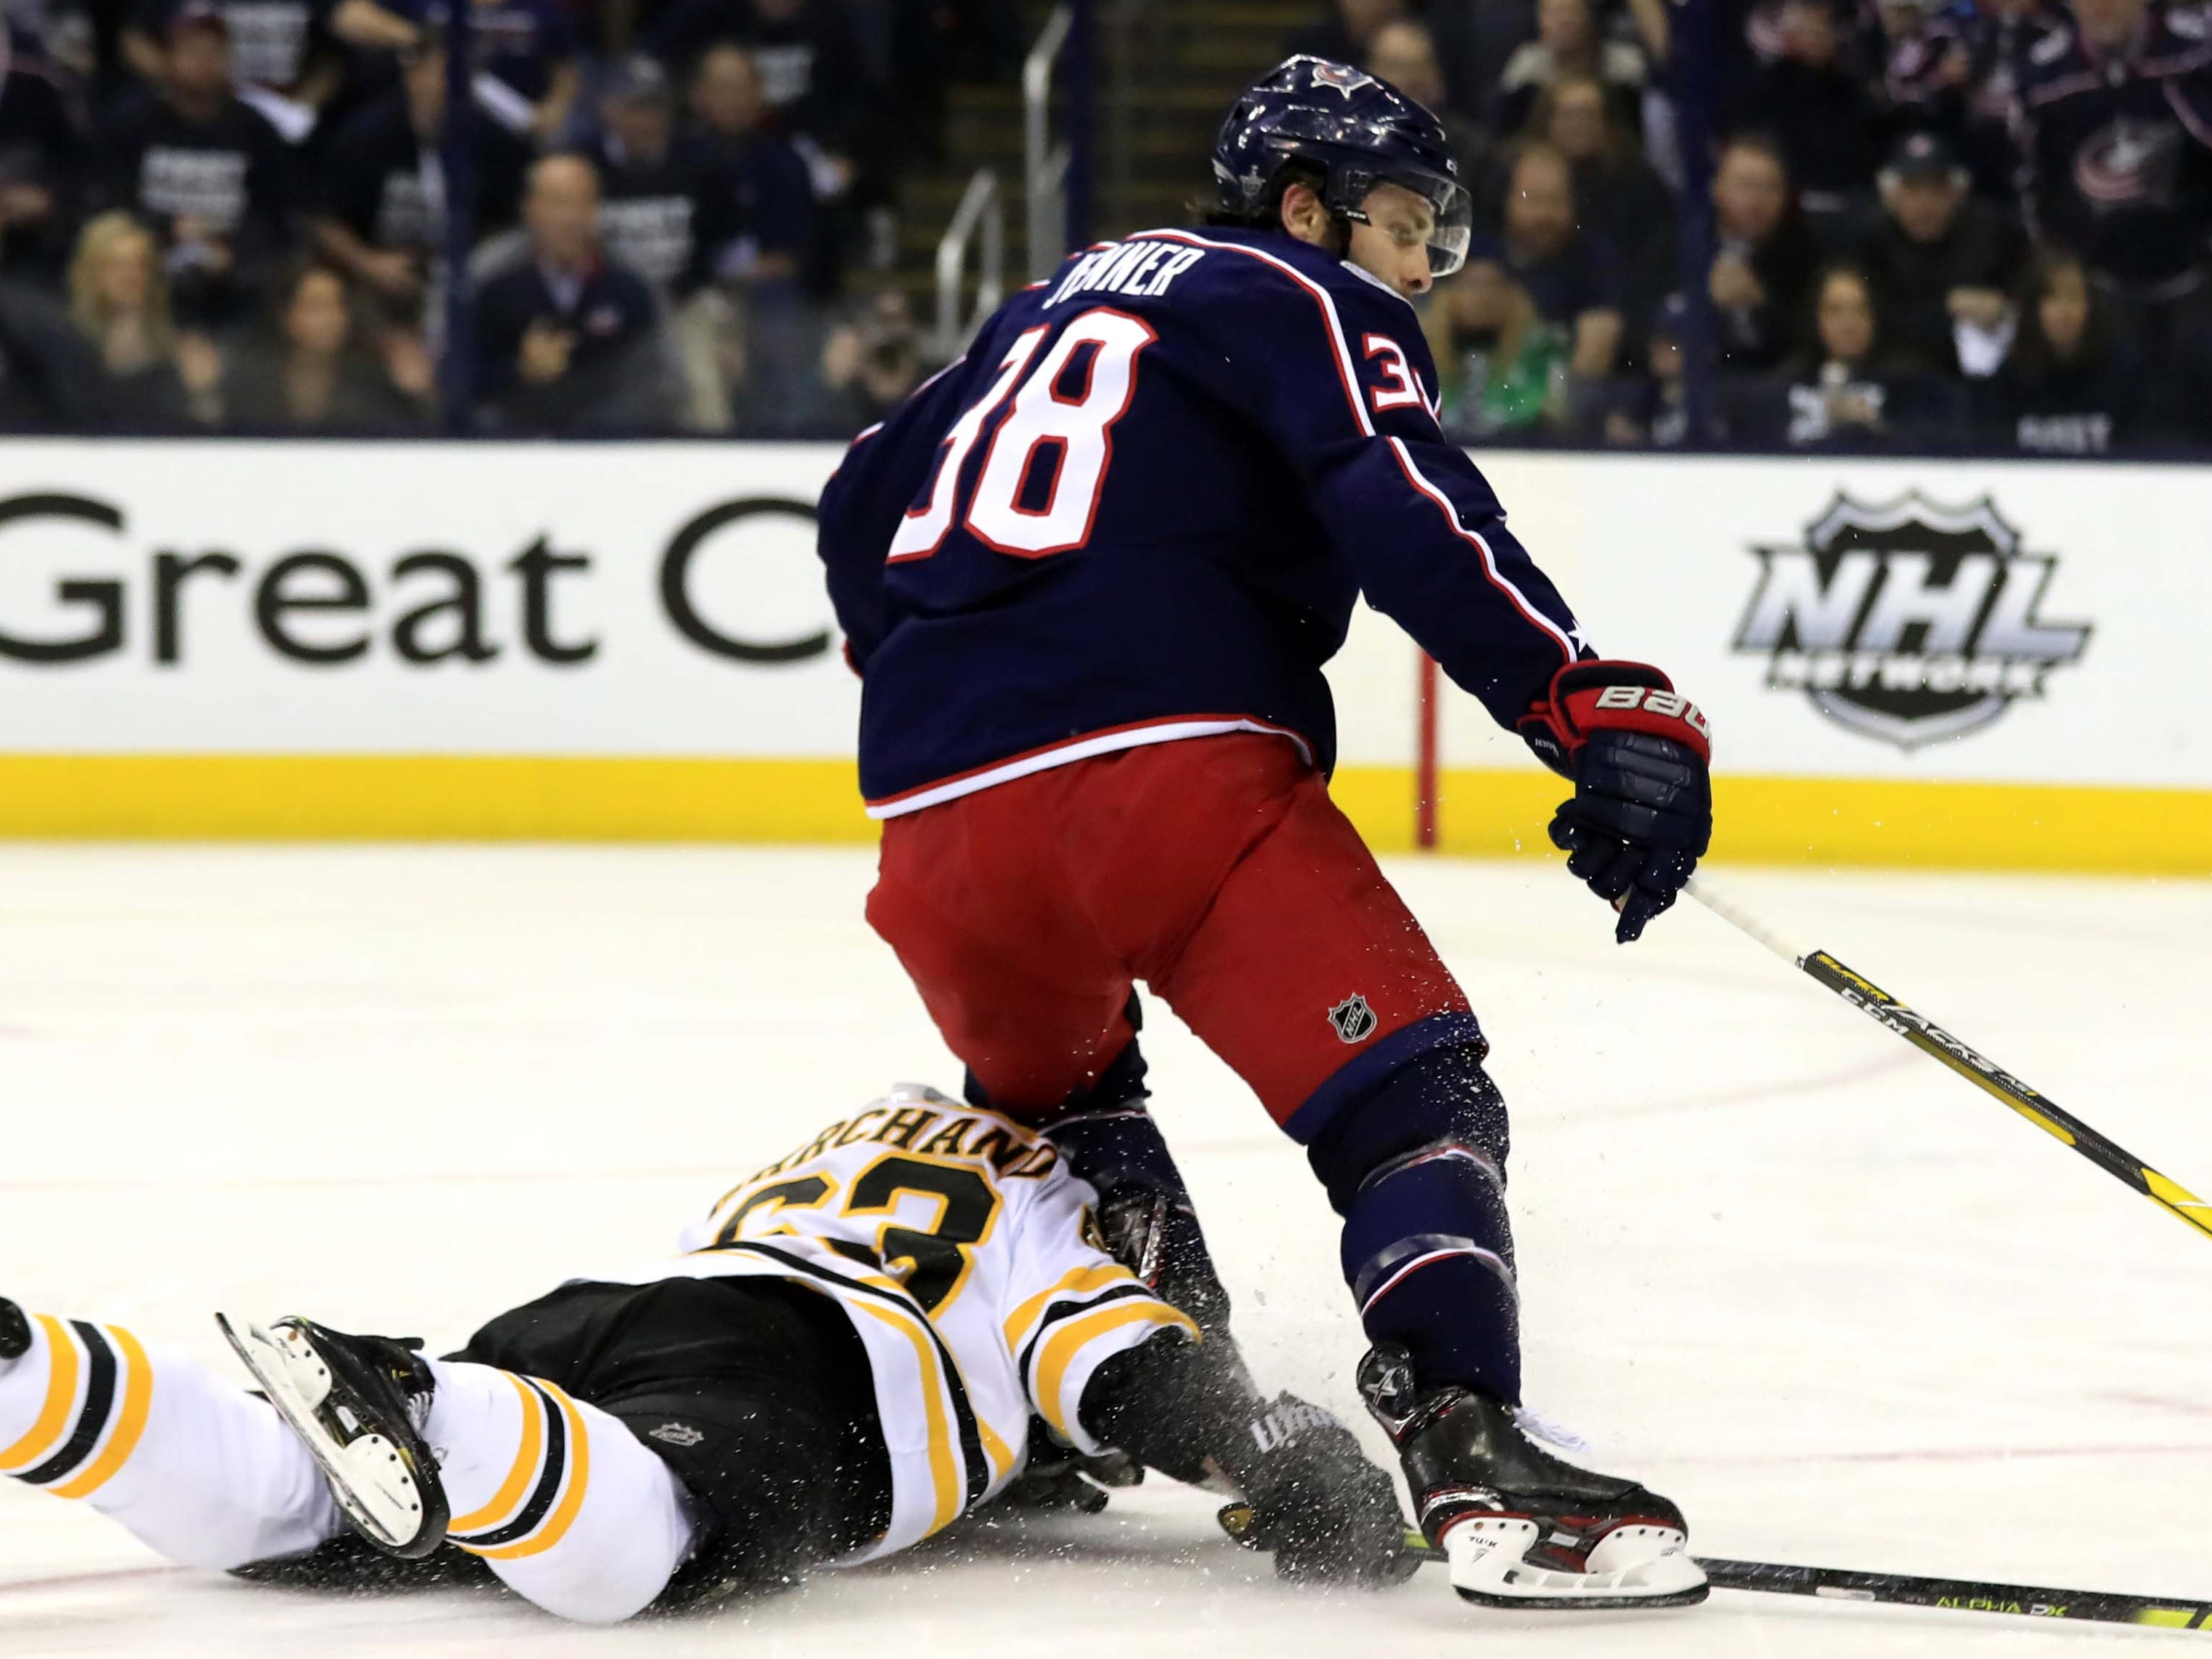 Second round: Boston's Brad Marchand  trips up Blue Jackets center Boone Jenner, leading to a Game 4 penalty shot. Tuukka Rask stopped Jenner.